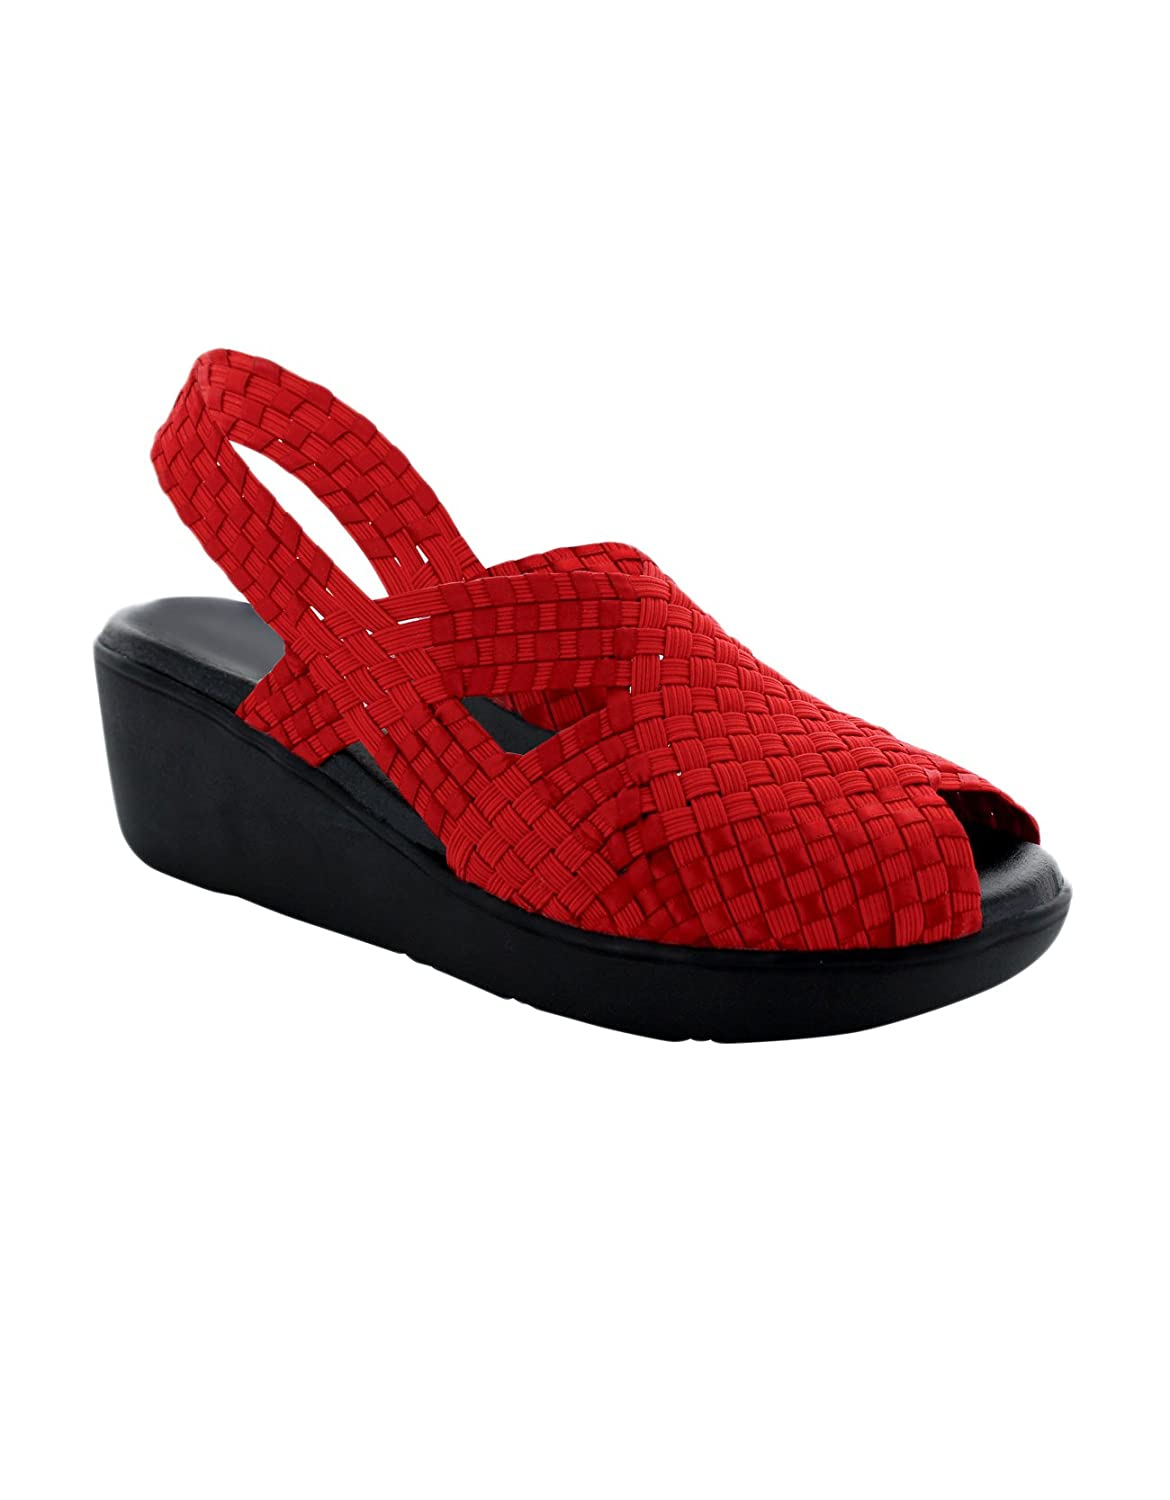 Paige Slingback Wedge Sandal Woven Shoes, Supports Plantar Fasciitis Foot Pain & Problems B076X97W84 6 B(M) US|Red